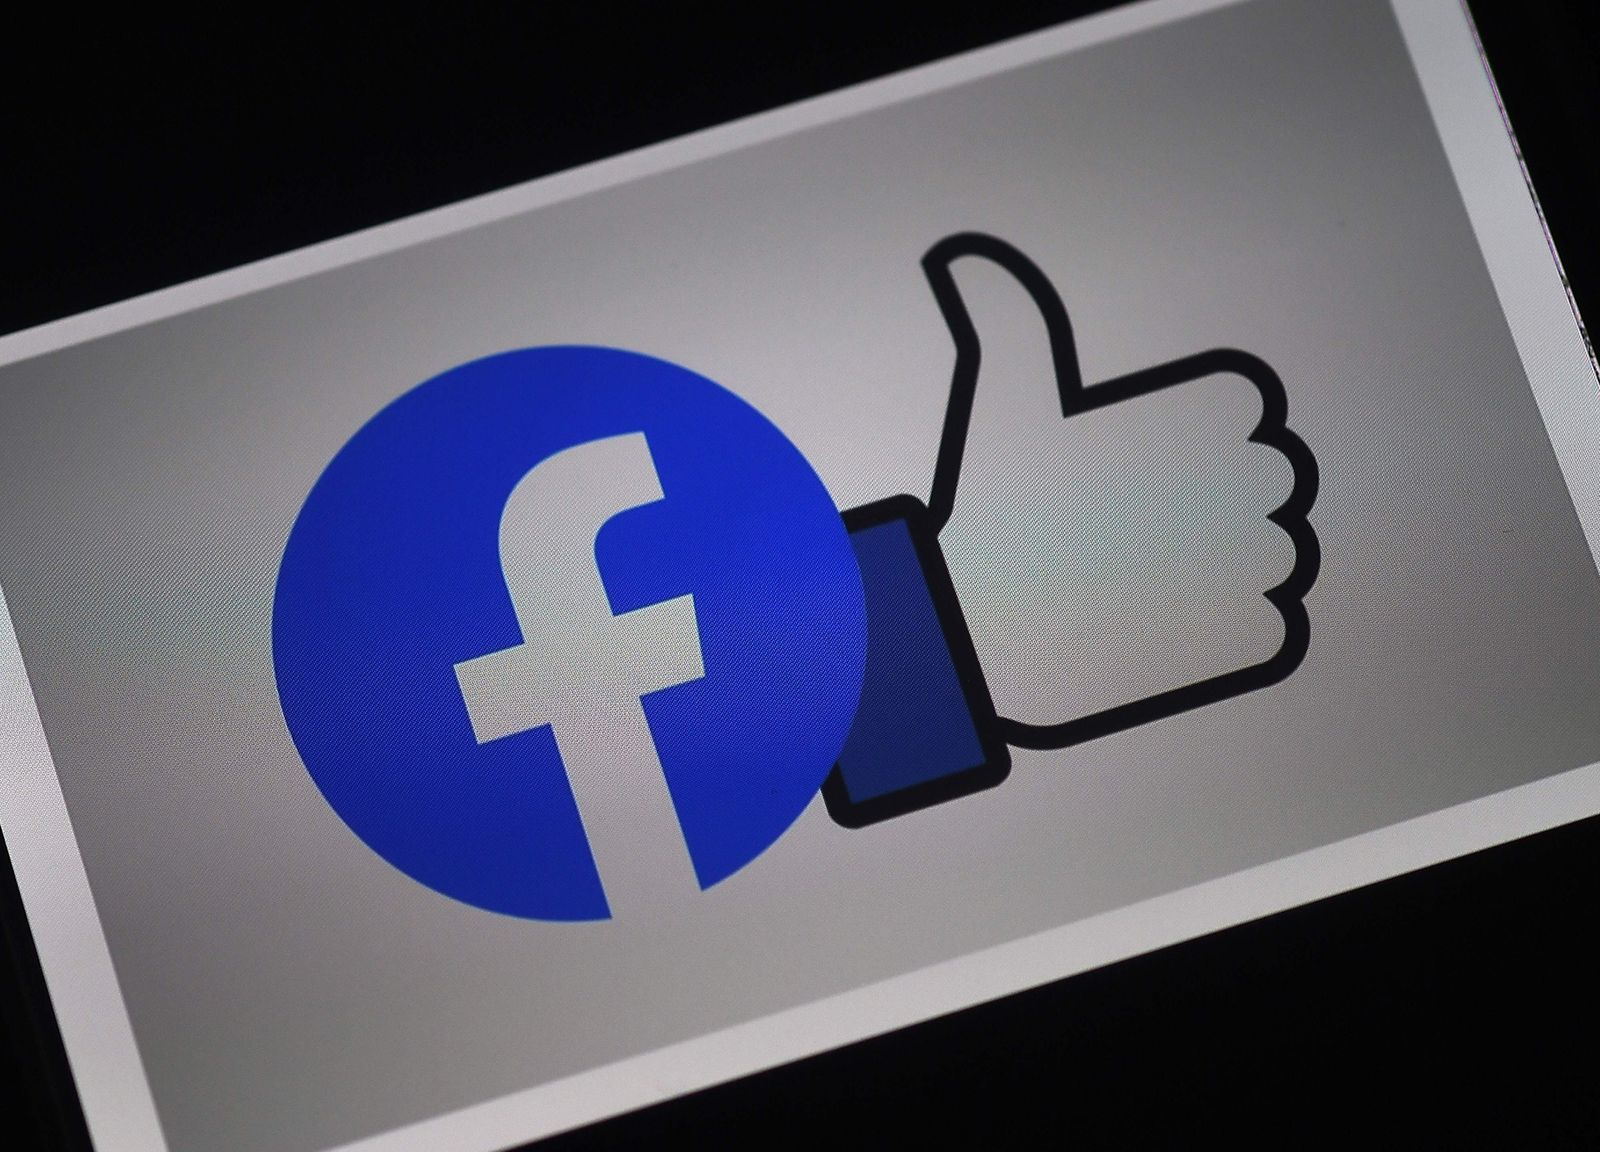 FILES-US-IT-LIFESTYLE-EARNINGS-FACEBOOK